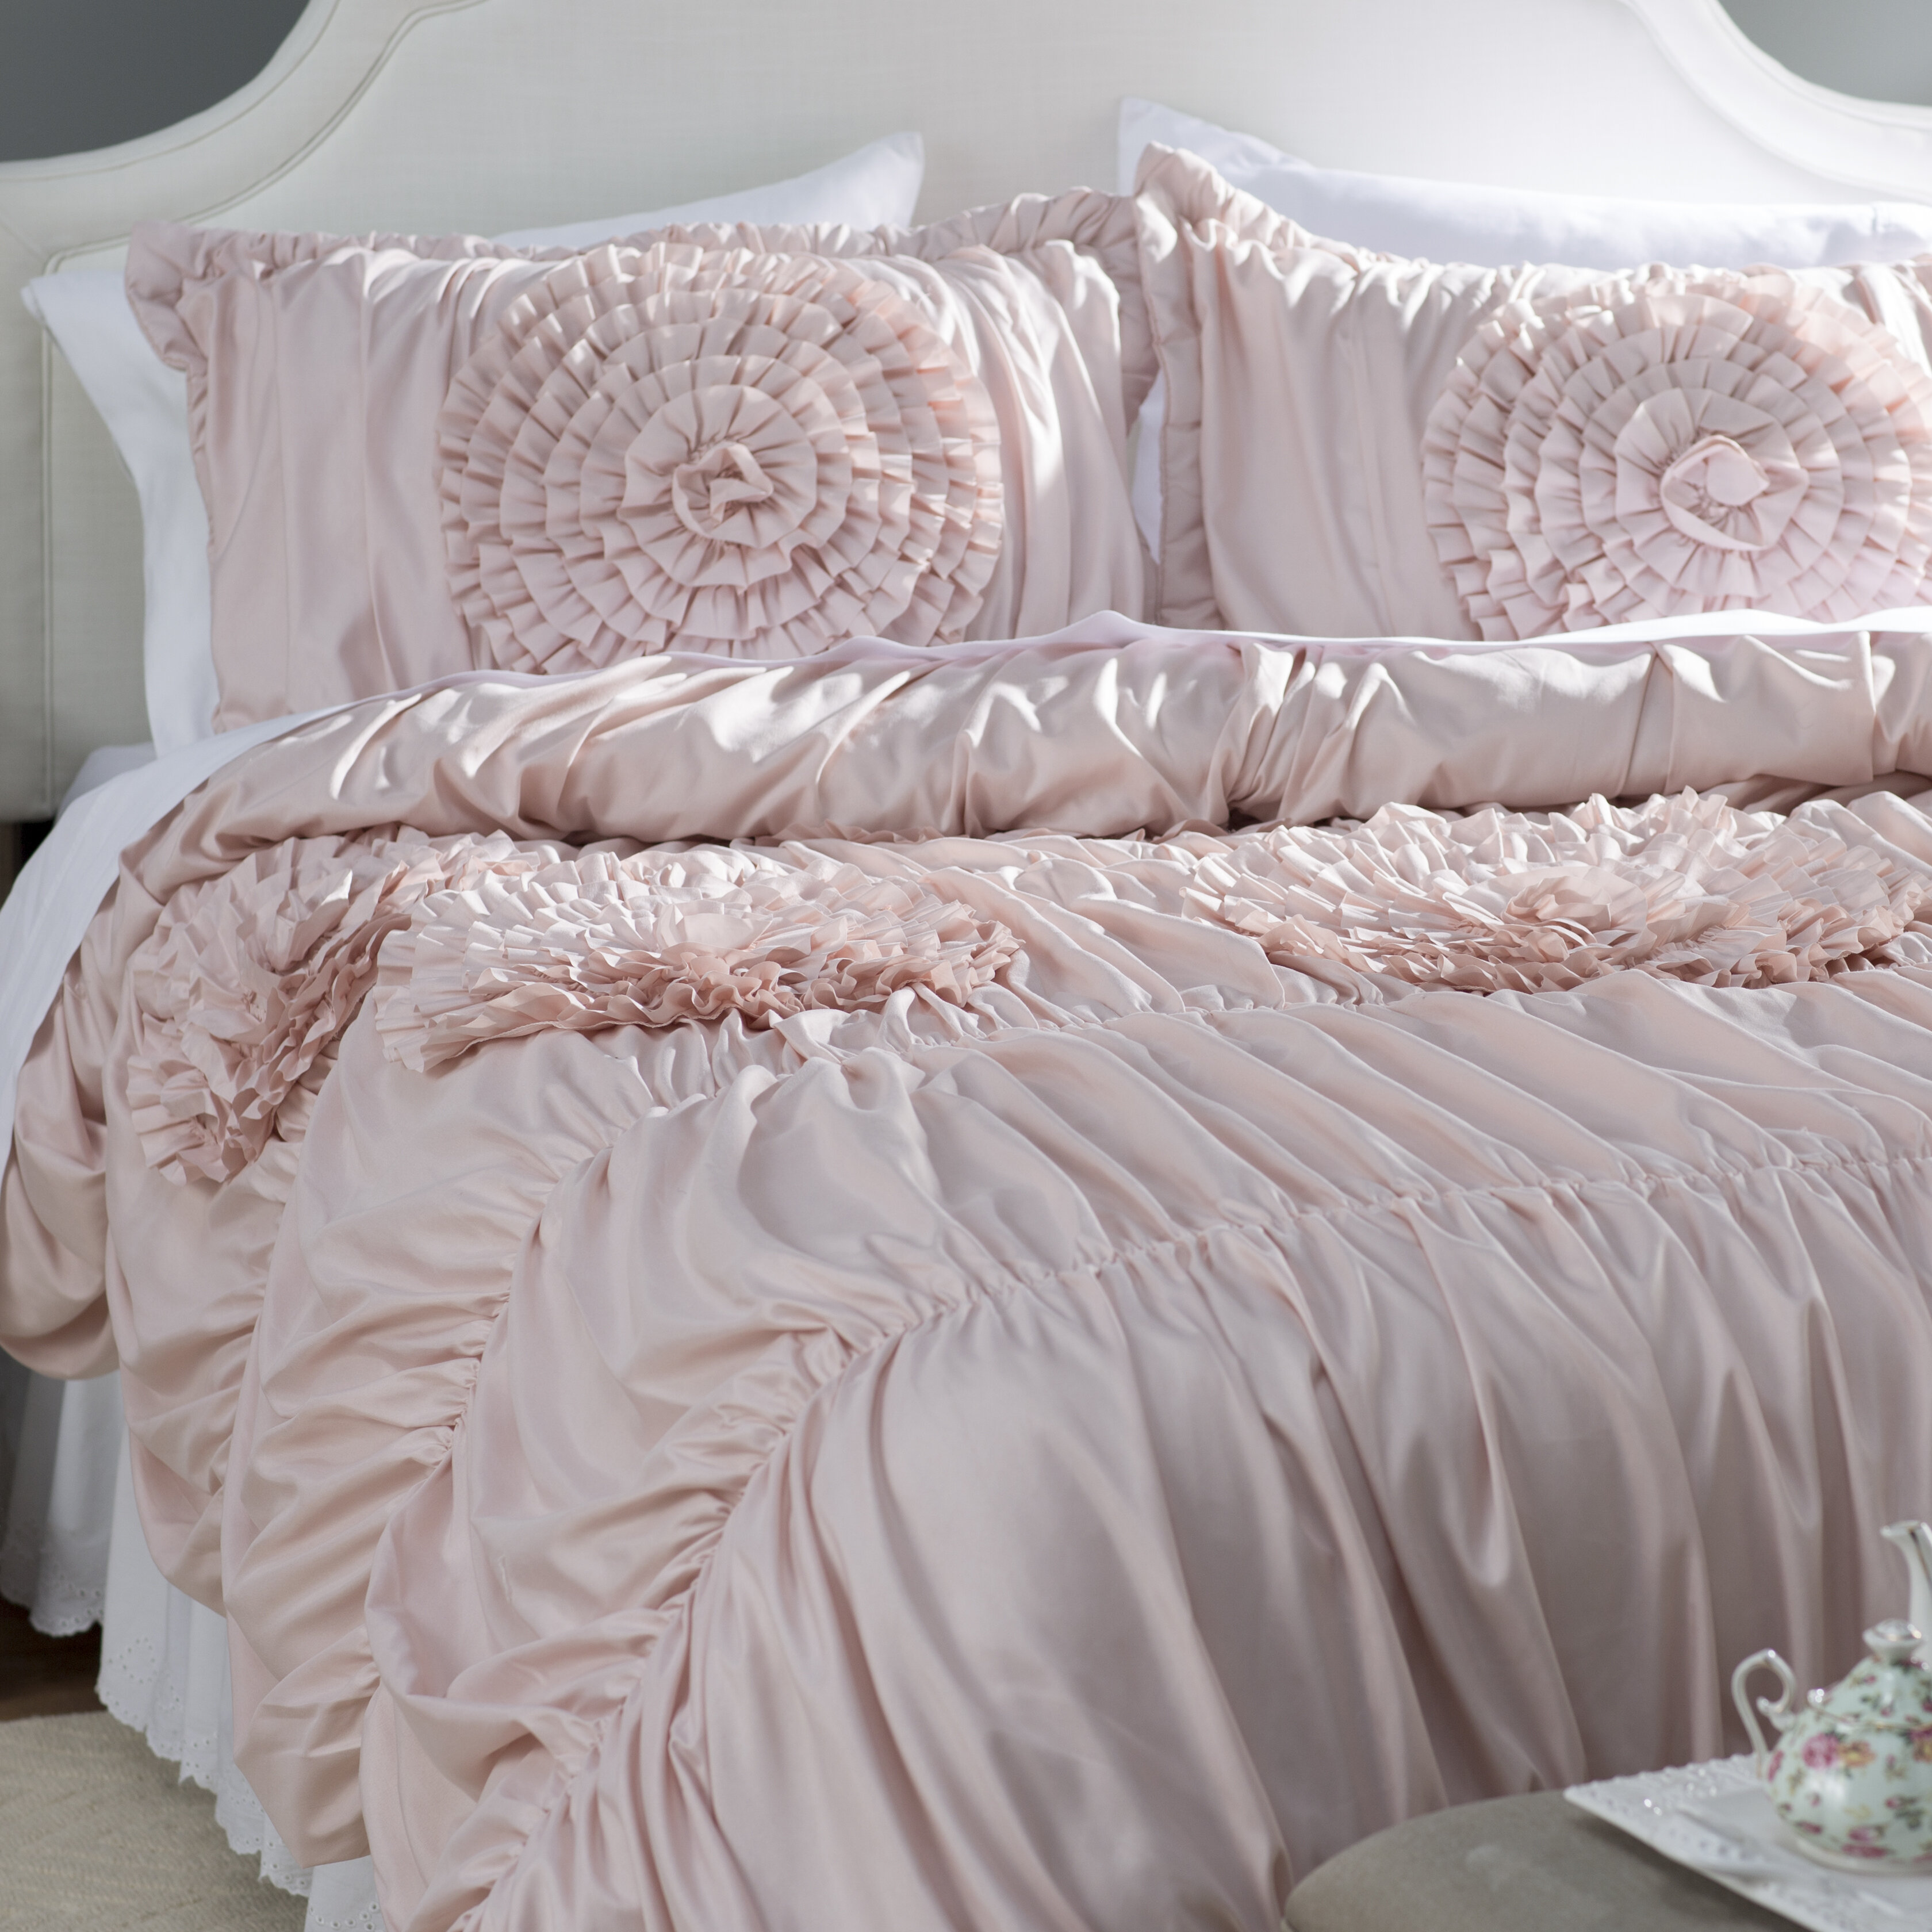 annabella overstock blush shipping pink set laura today bath duvet bedding free product cover ashley